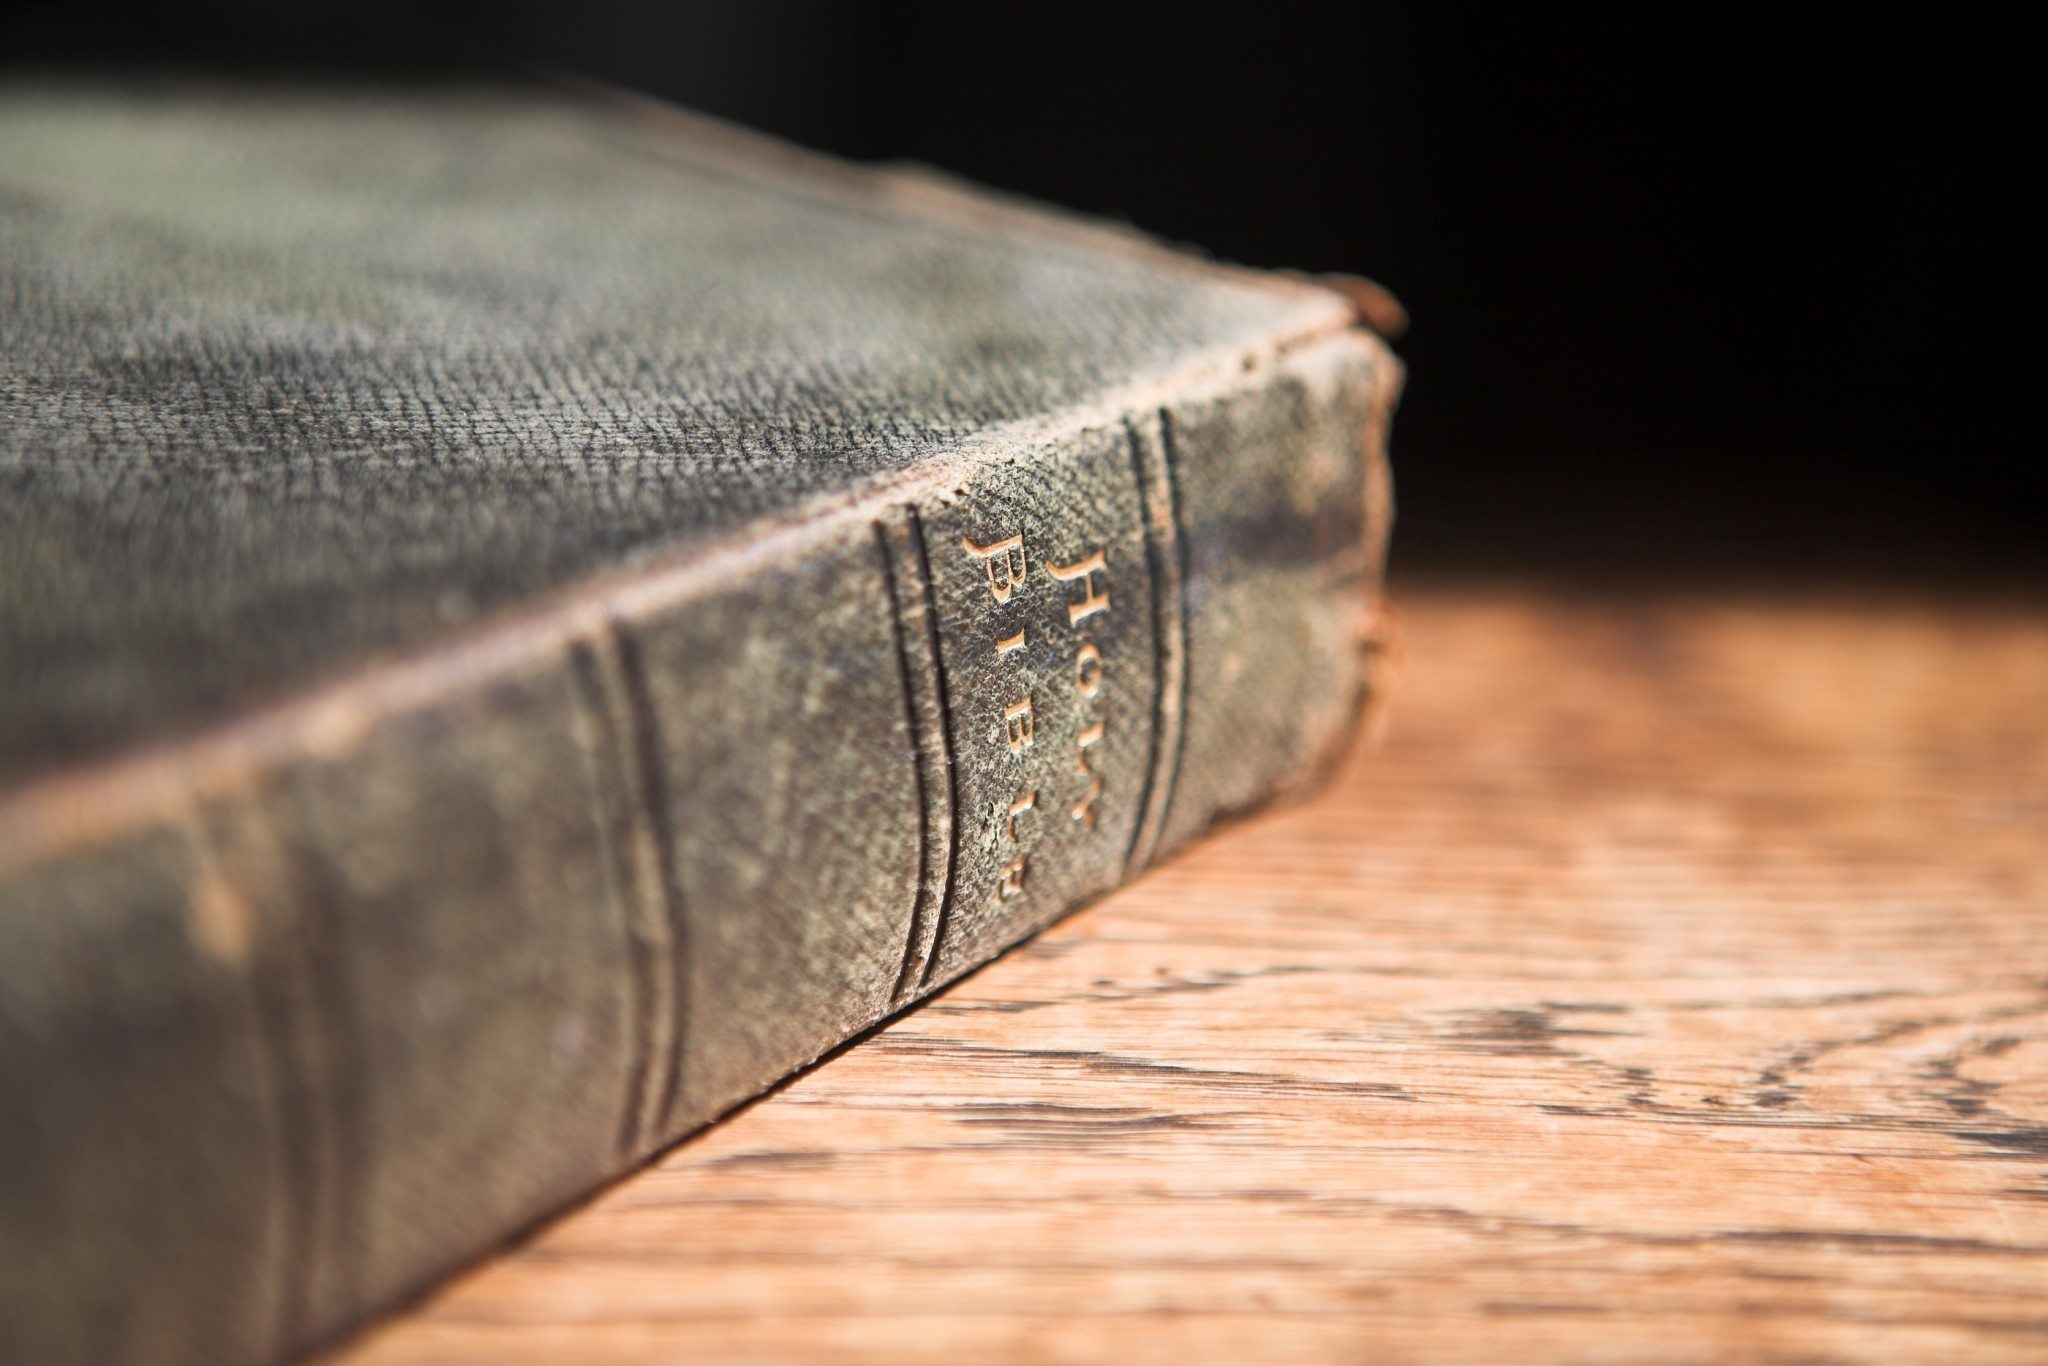 Leather covered old bible lying on a wooden table in a beam of sunlight (not an isolated image) VERY SHALLOW Depth of field  Focus on Text Holy Bible